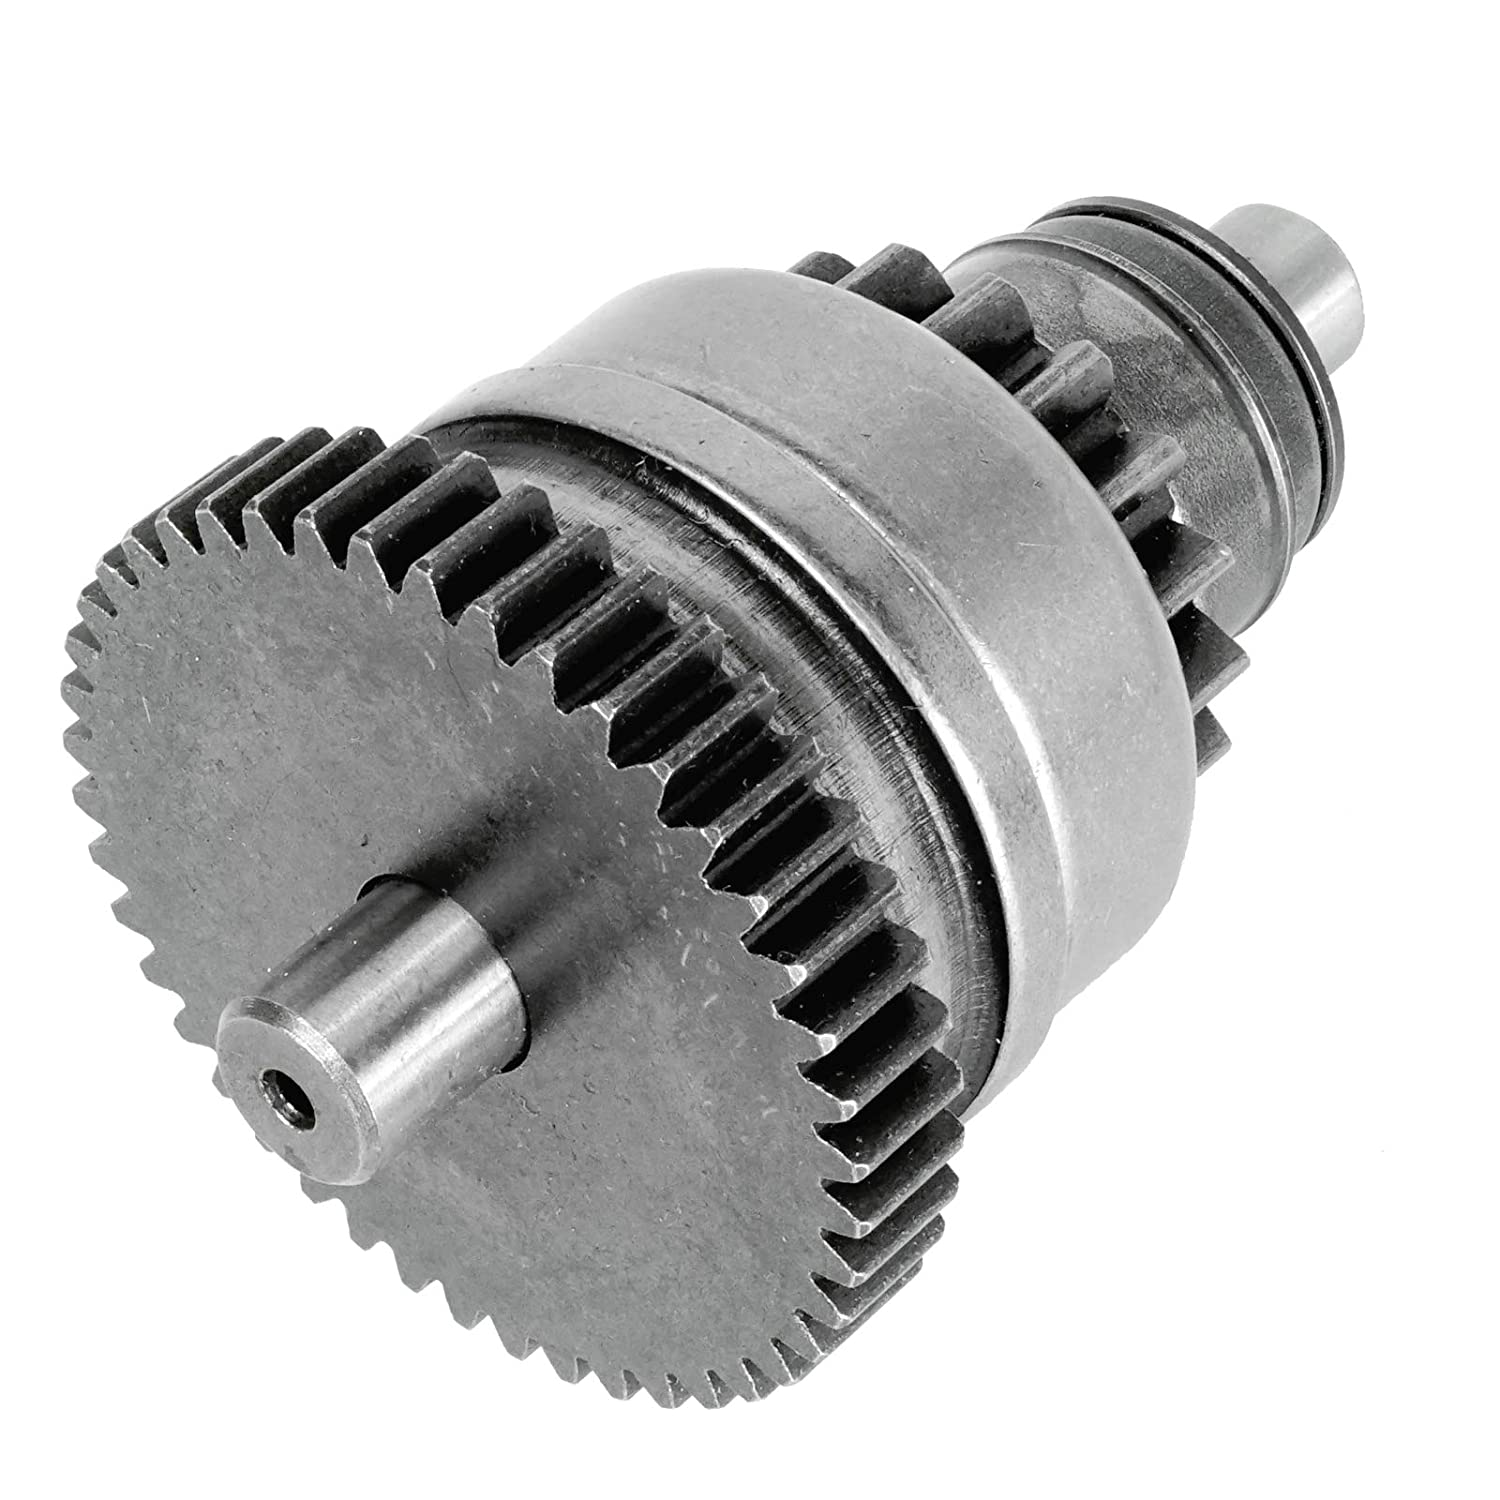 CALTRIC STARTER DRIVE GEAR BENDIX compatible with Can-Am Bombardier OUTLANDER MAX 400 4X4 2004-2015